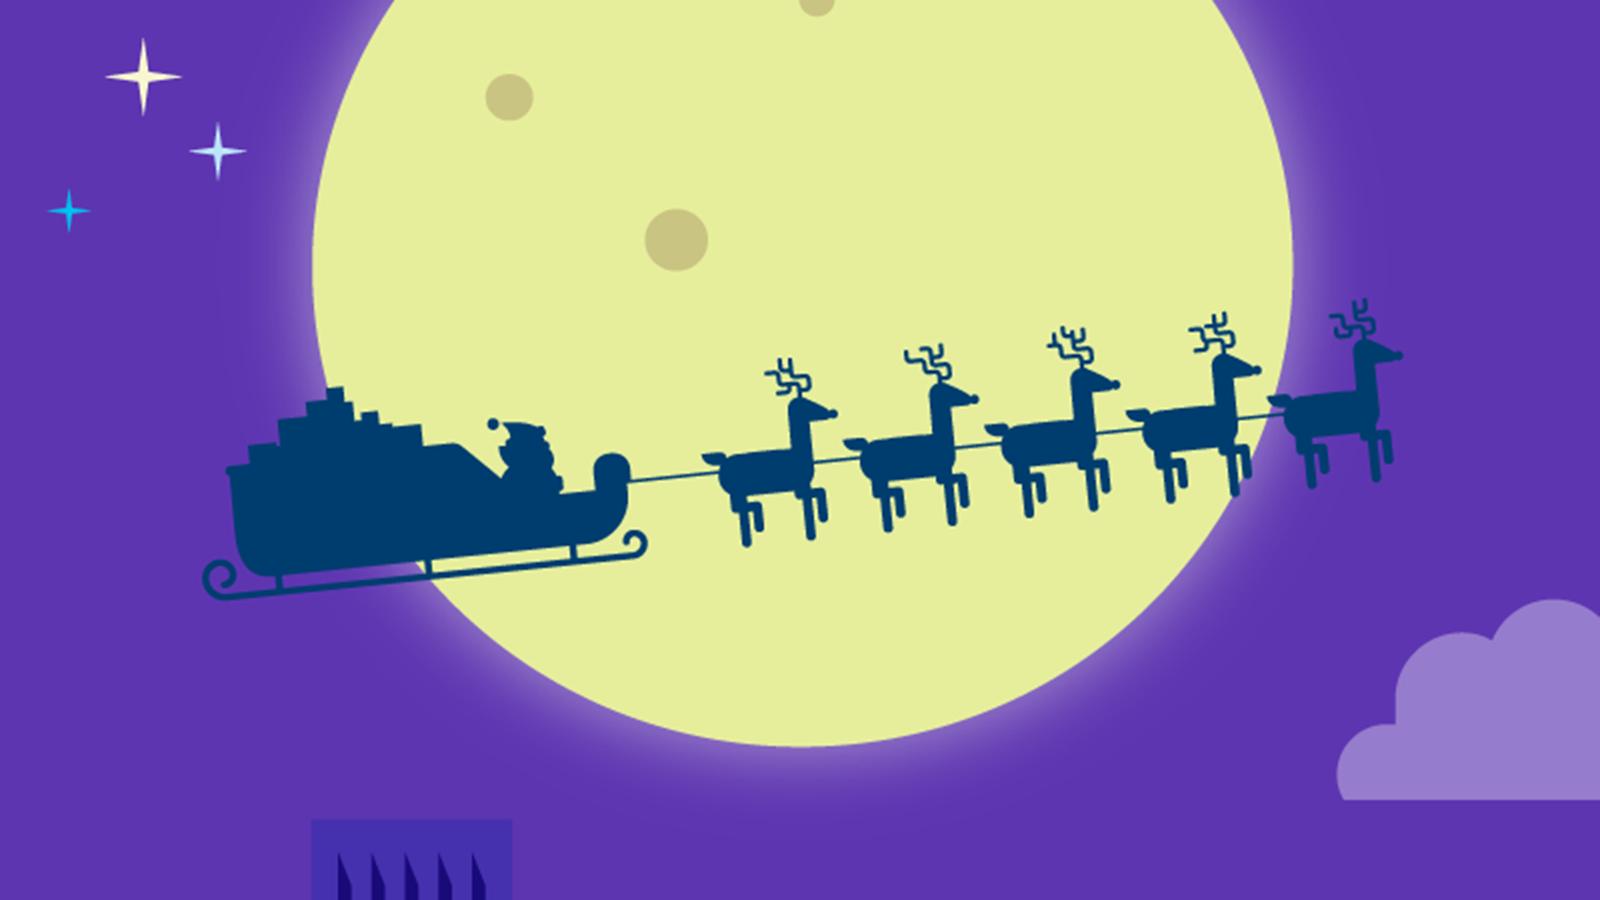 Santa on his sleigh flying through the night with reindeer.